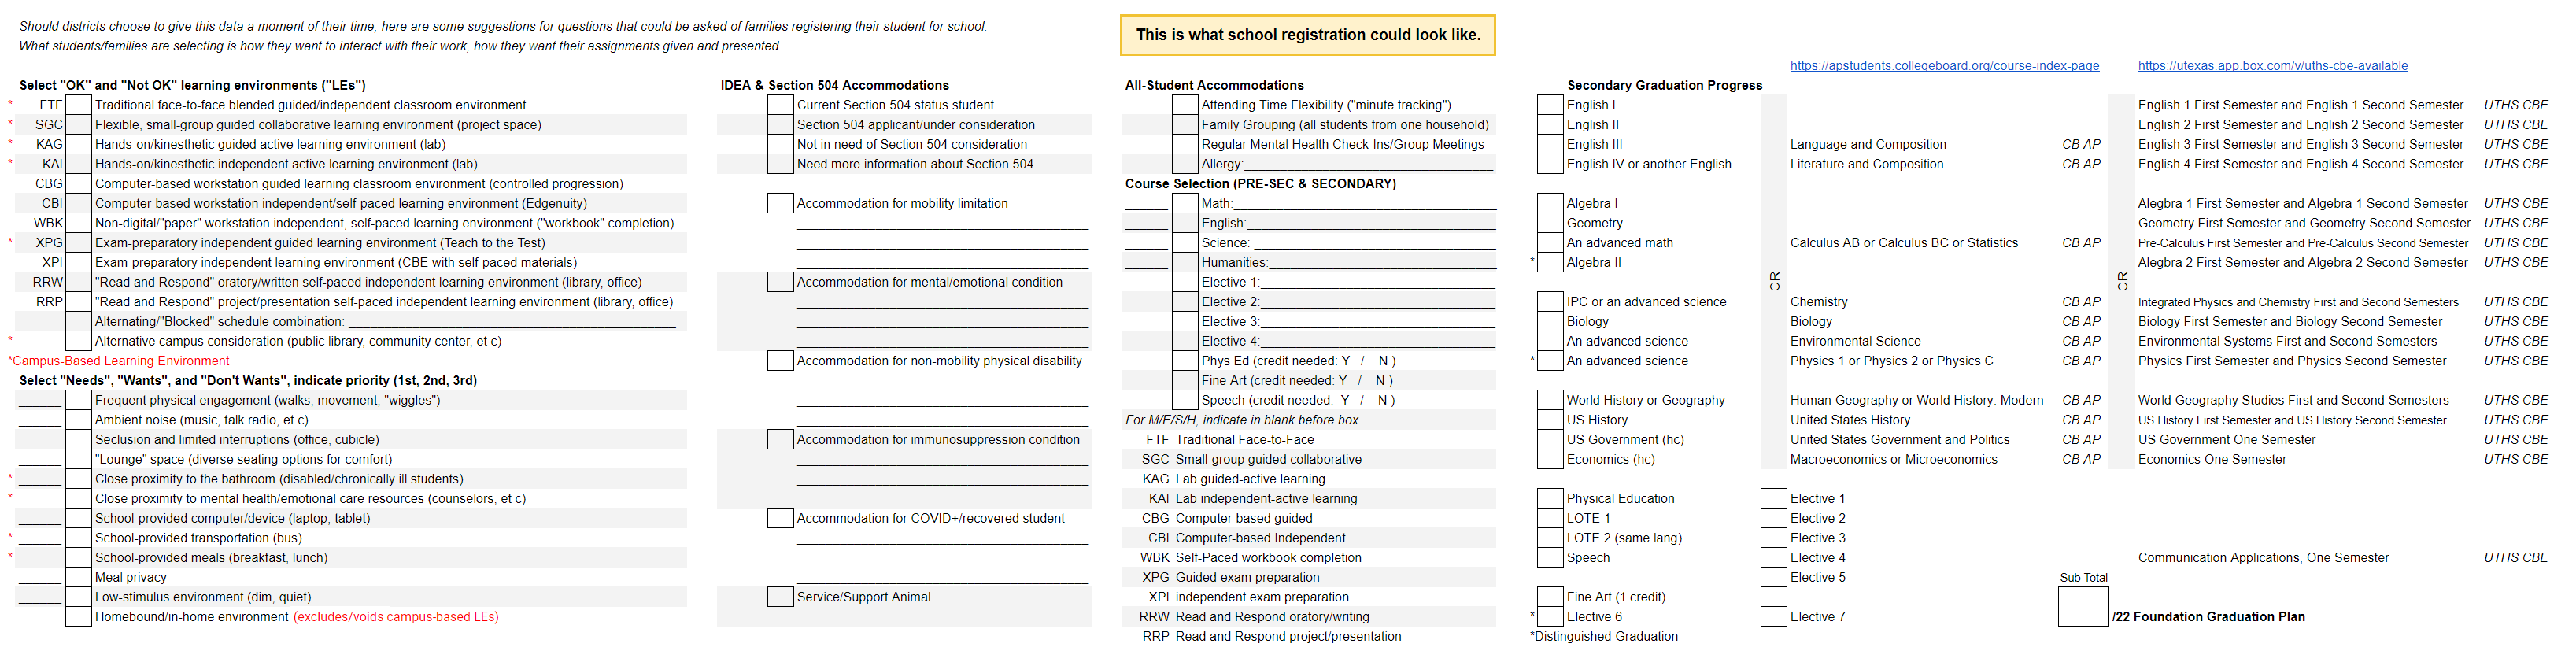 Registration Recommendation Form